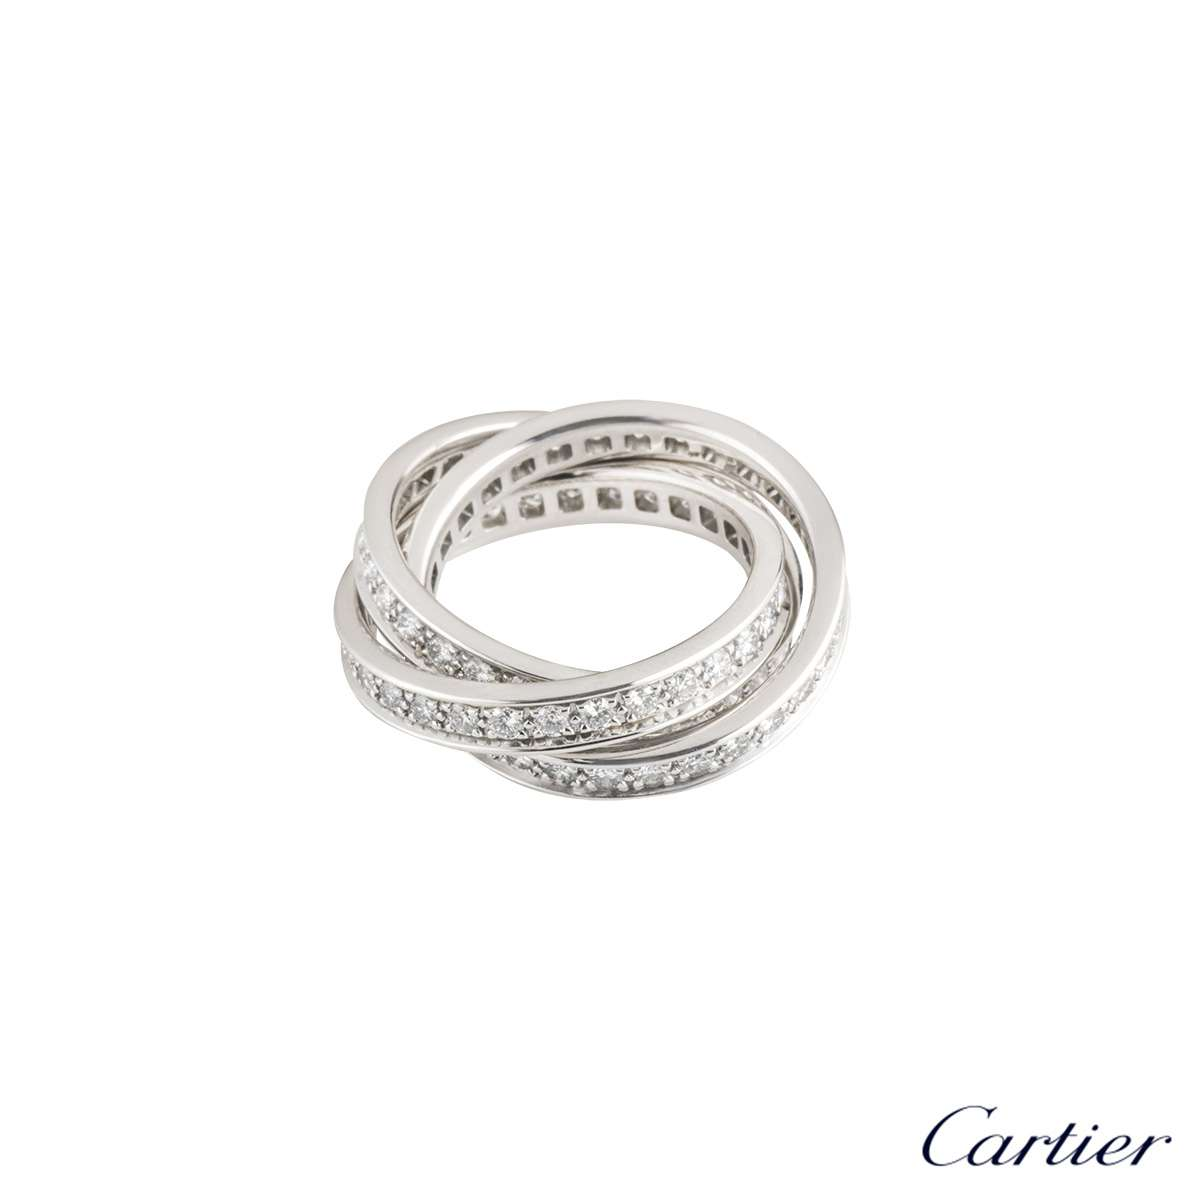 White Gold Trinity de Cartier Diamond Ring B4106248